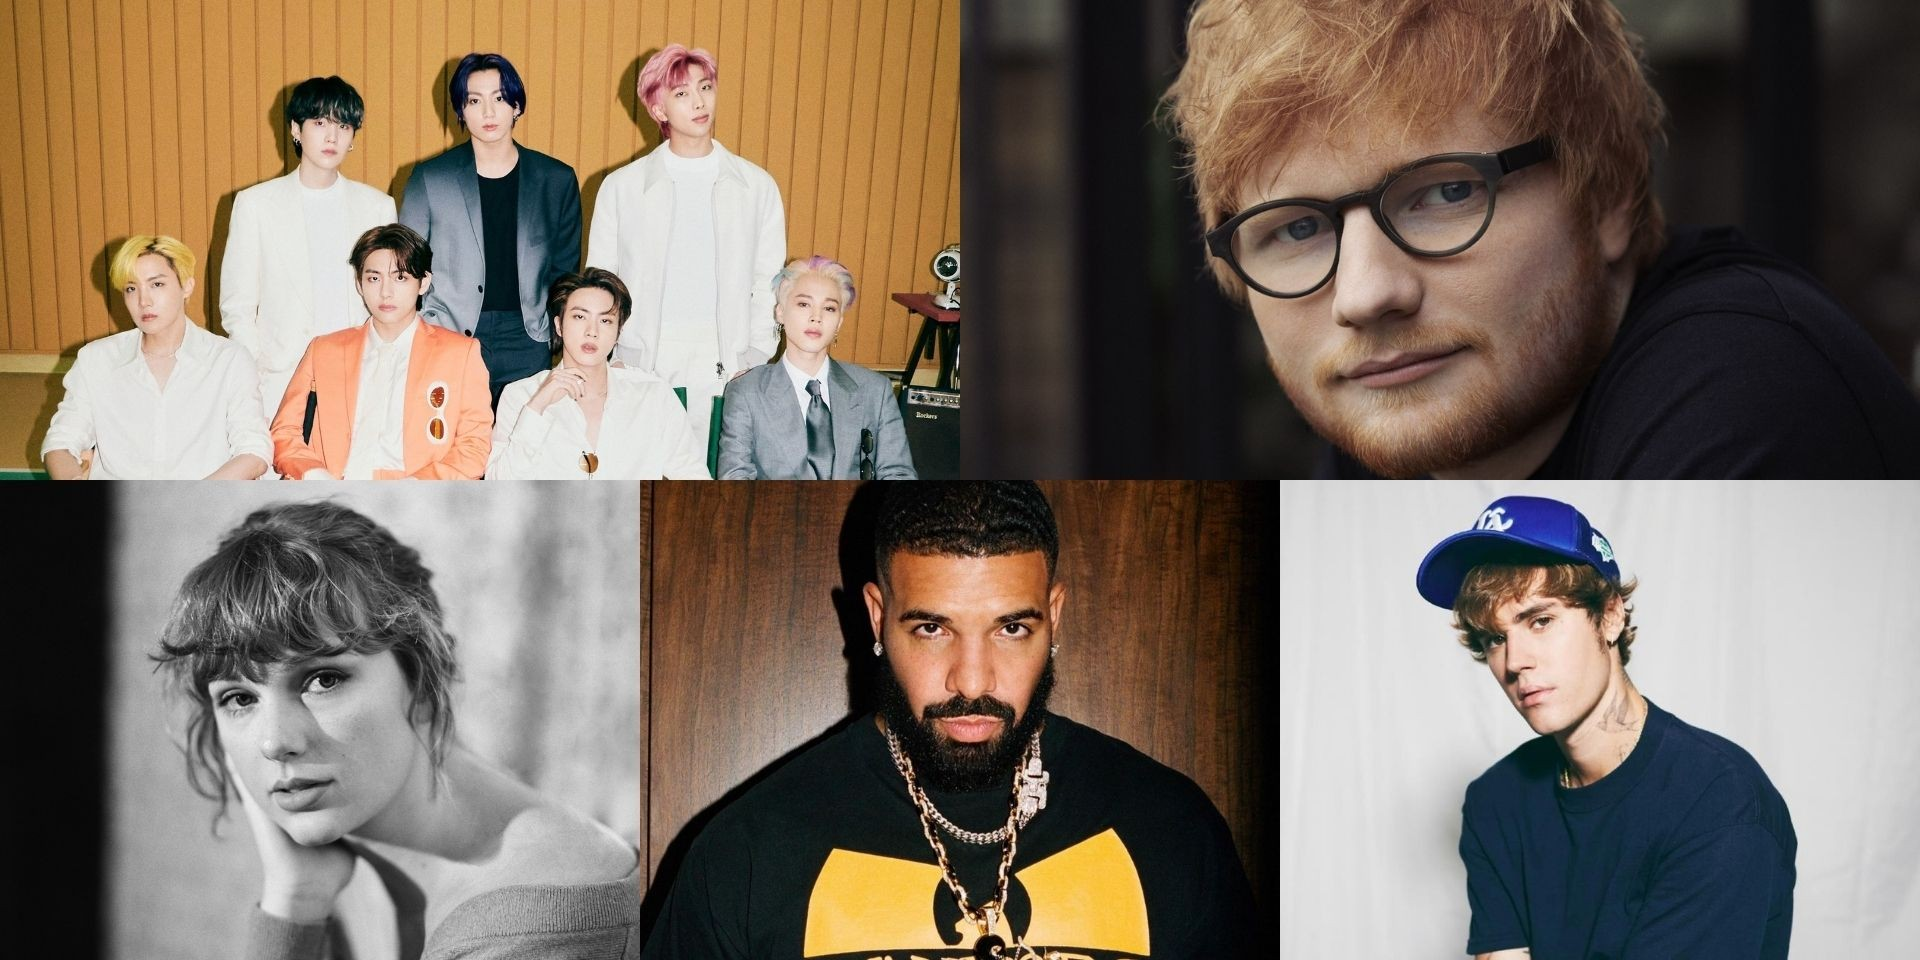 Here are the top 10 Spotify debuts of all time —  BTS, Ed Sheeran, Justin Bieber, Taylor Swift, Drake, and more